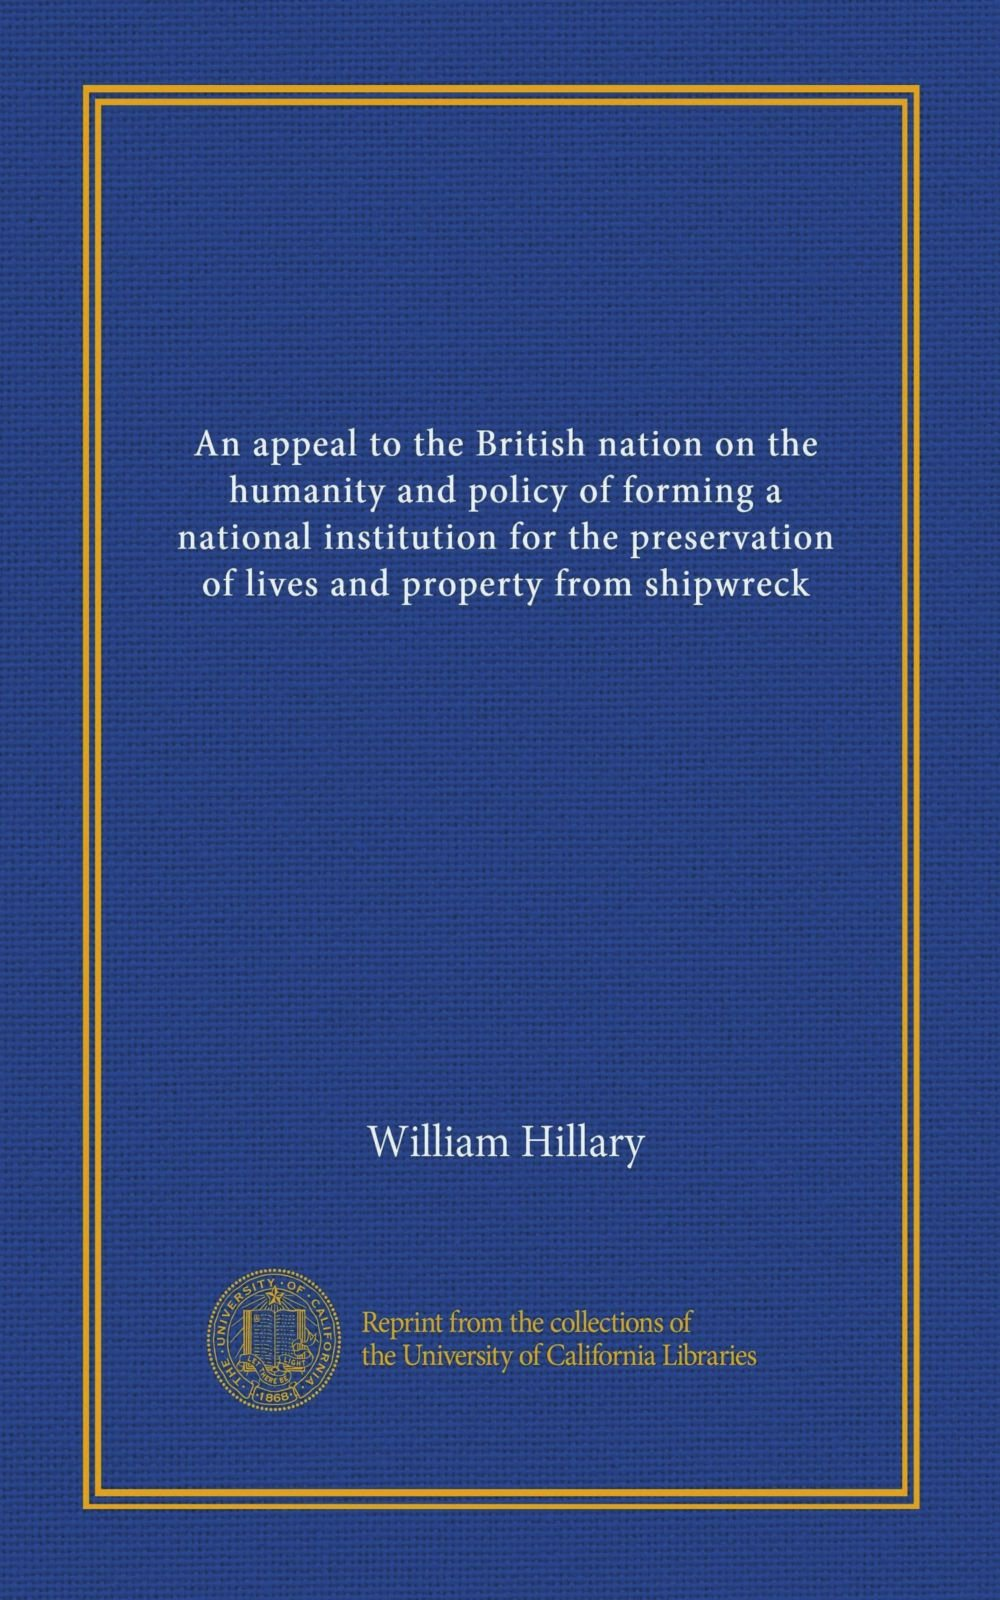 Download An appeal to the British nation on the humanity and policy of forming a national institution for the preservation of lives and property from shipwreck pdf